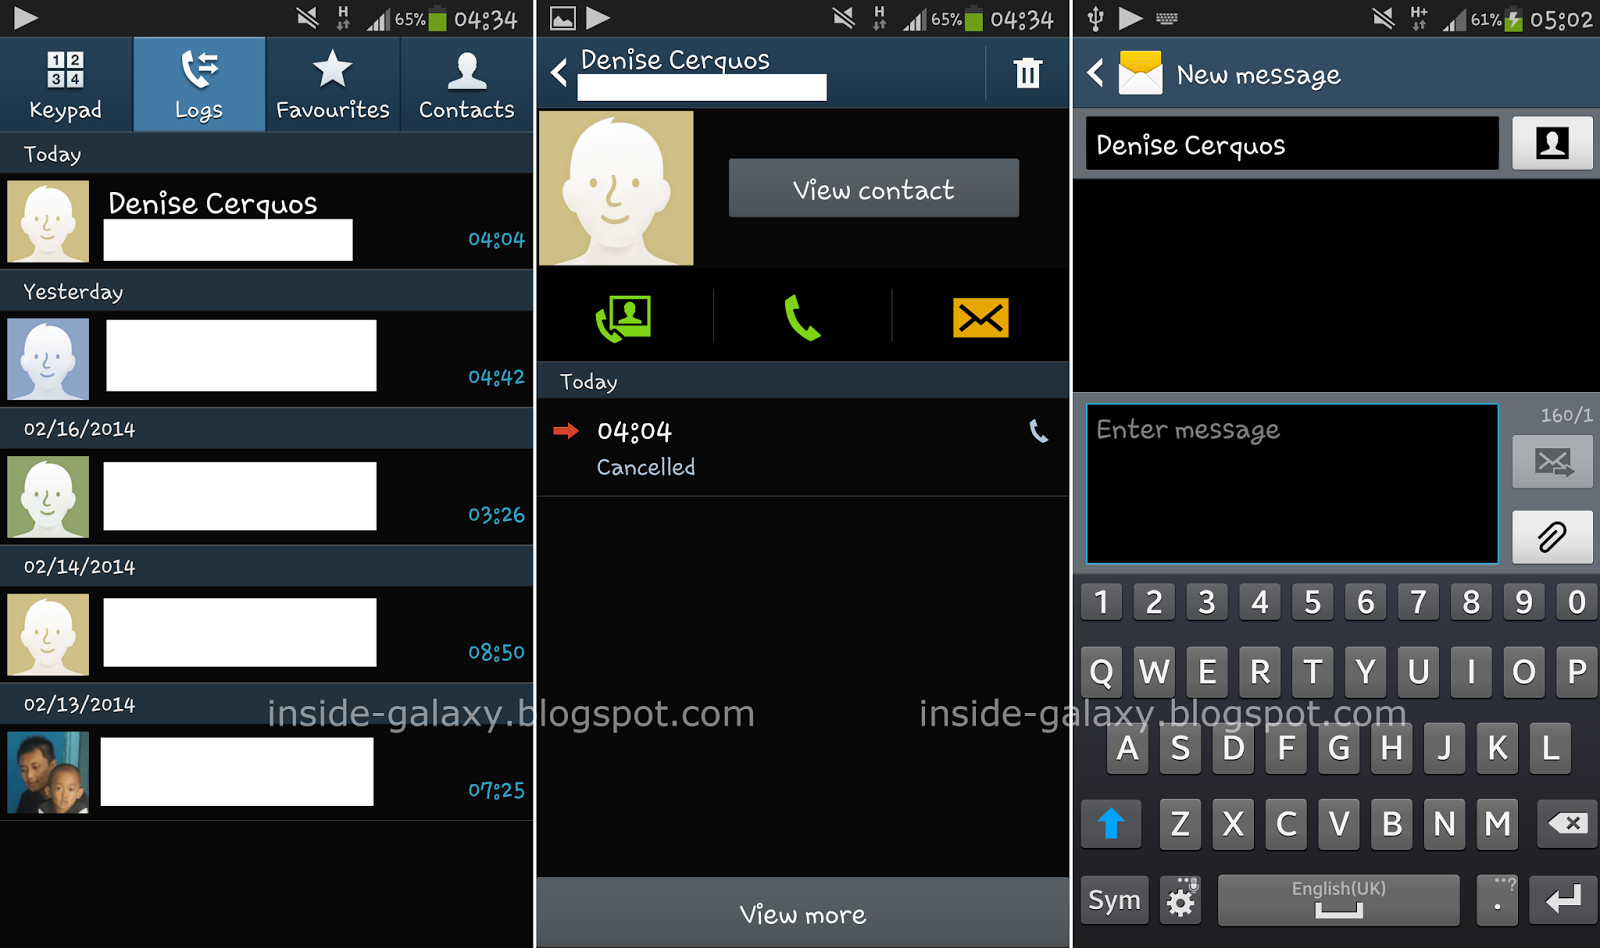 Samsung Galaxy S4: 4 Methods to Send a Message